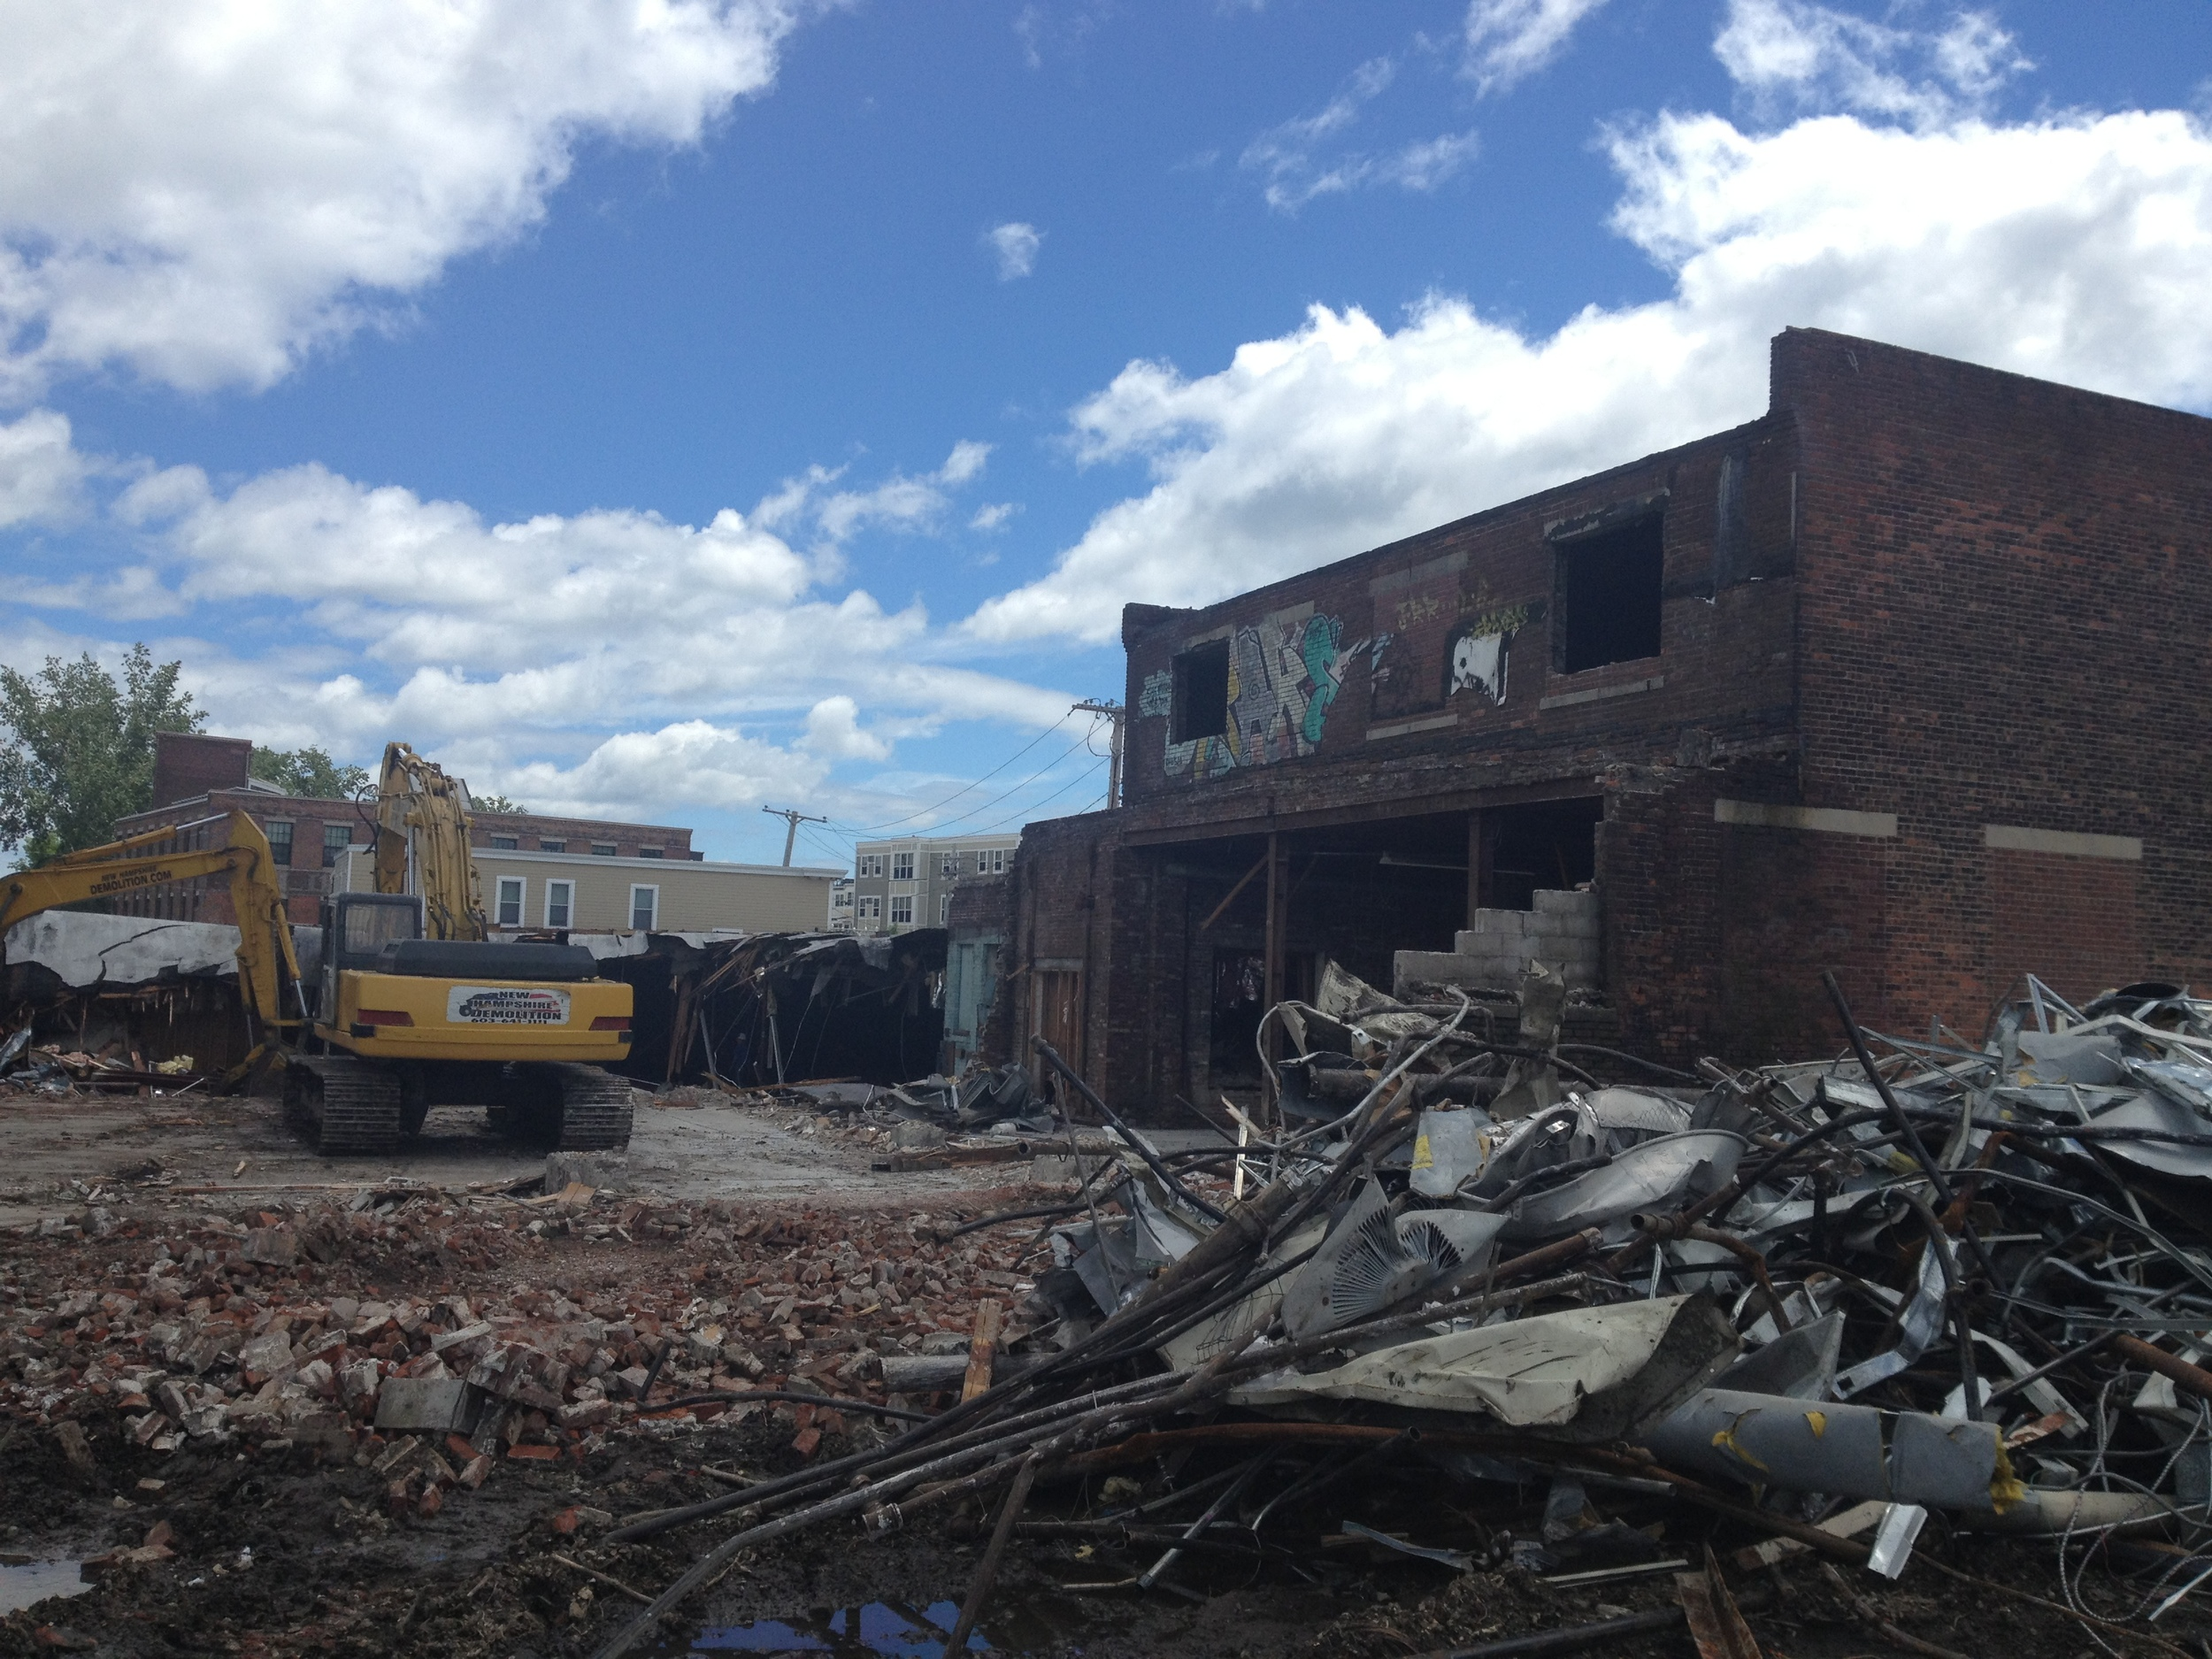 Demolition of existing warehouse to make way for The Chelsea Flats.